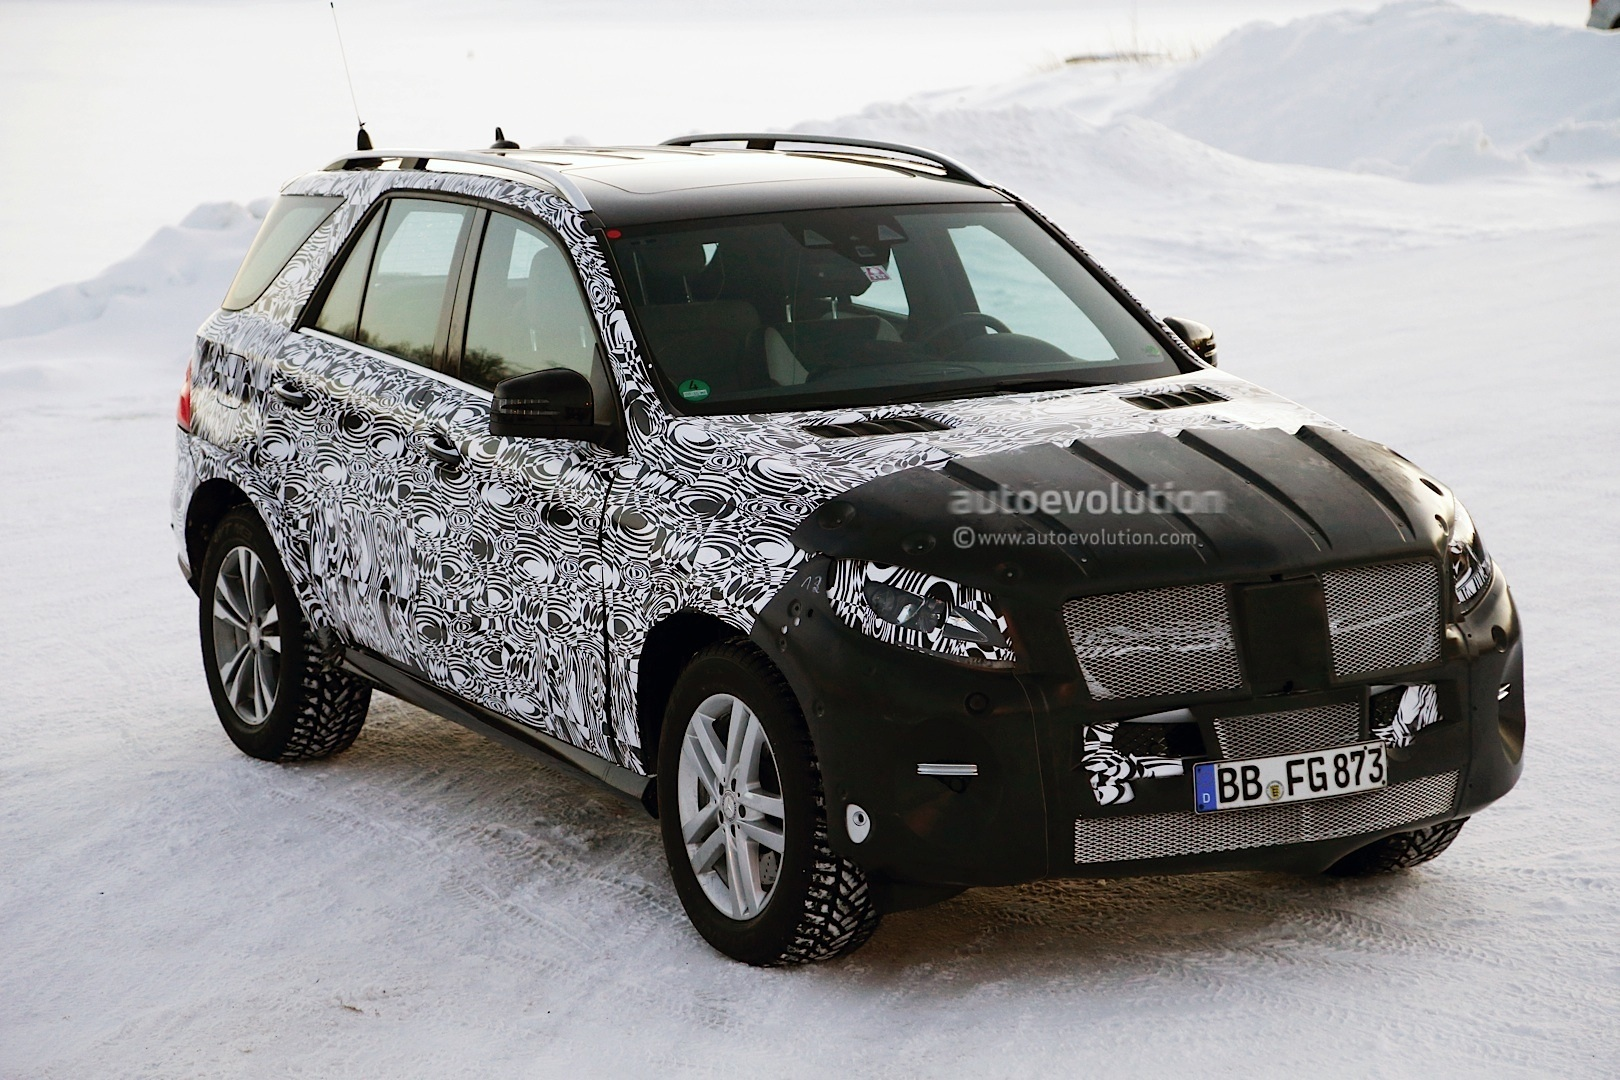 Spyshots 2015 mercedes m class getting major facelift for Mercedes benz ml350 2015